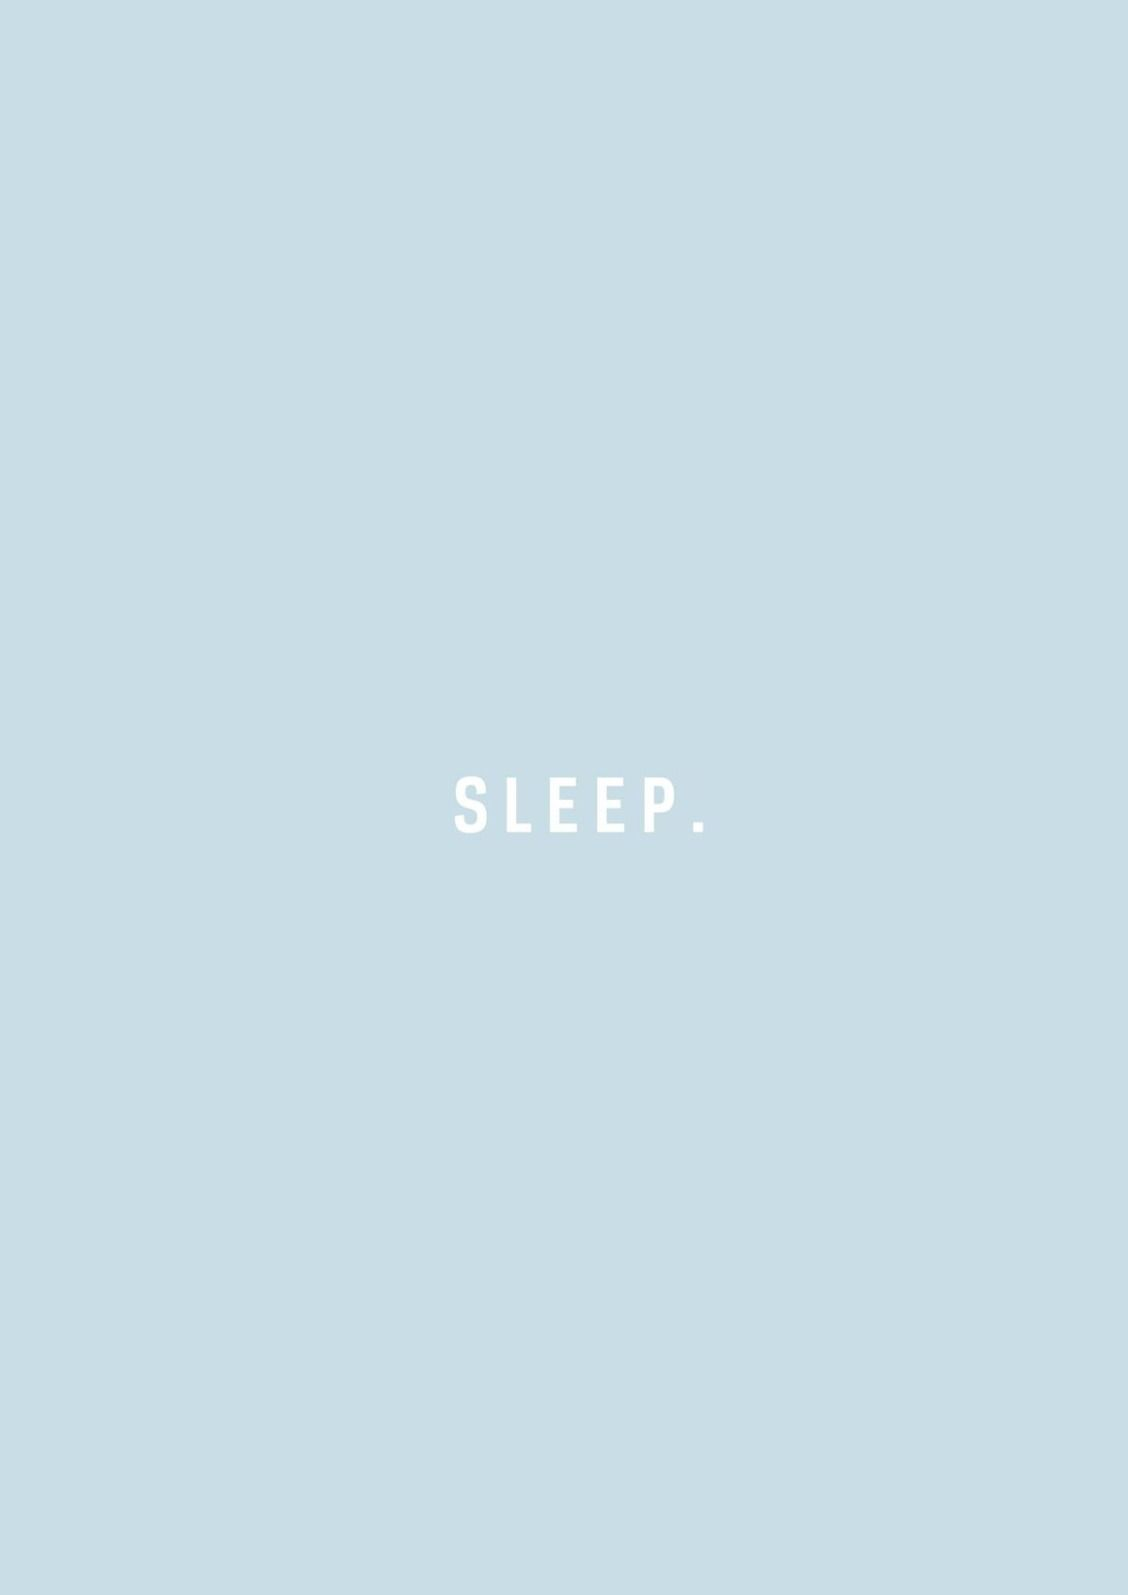 Sleep It S A Sunday Blue Aesthetic Aesthetic